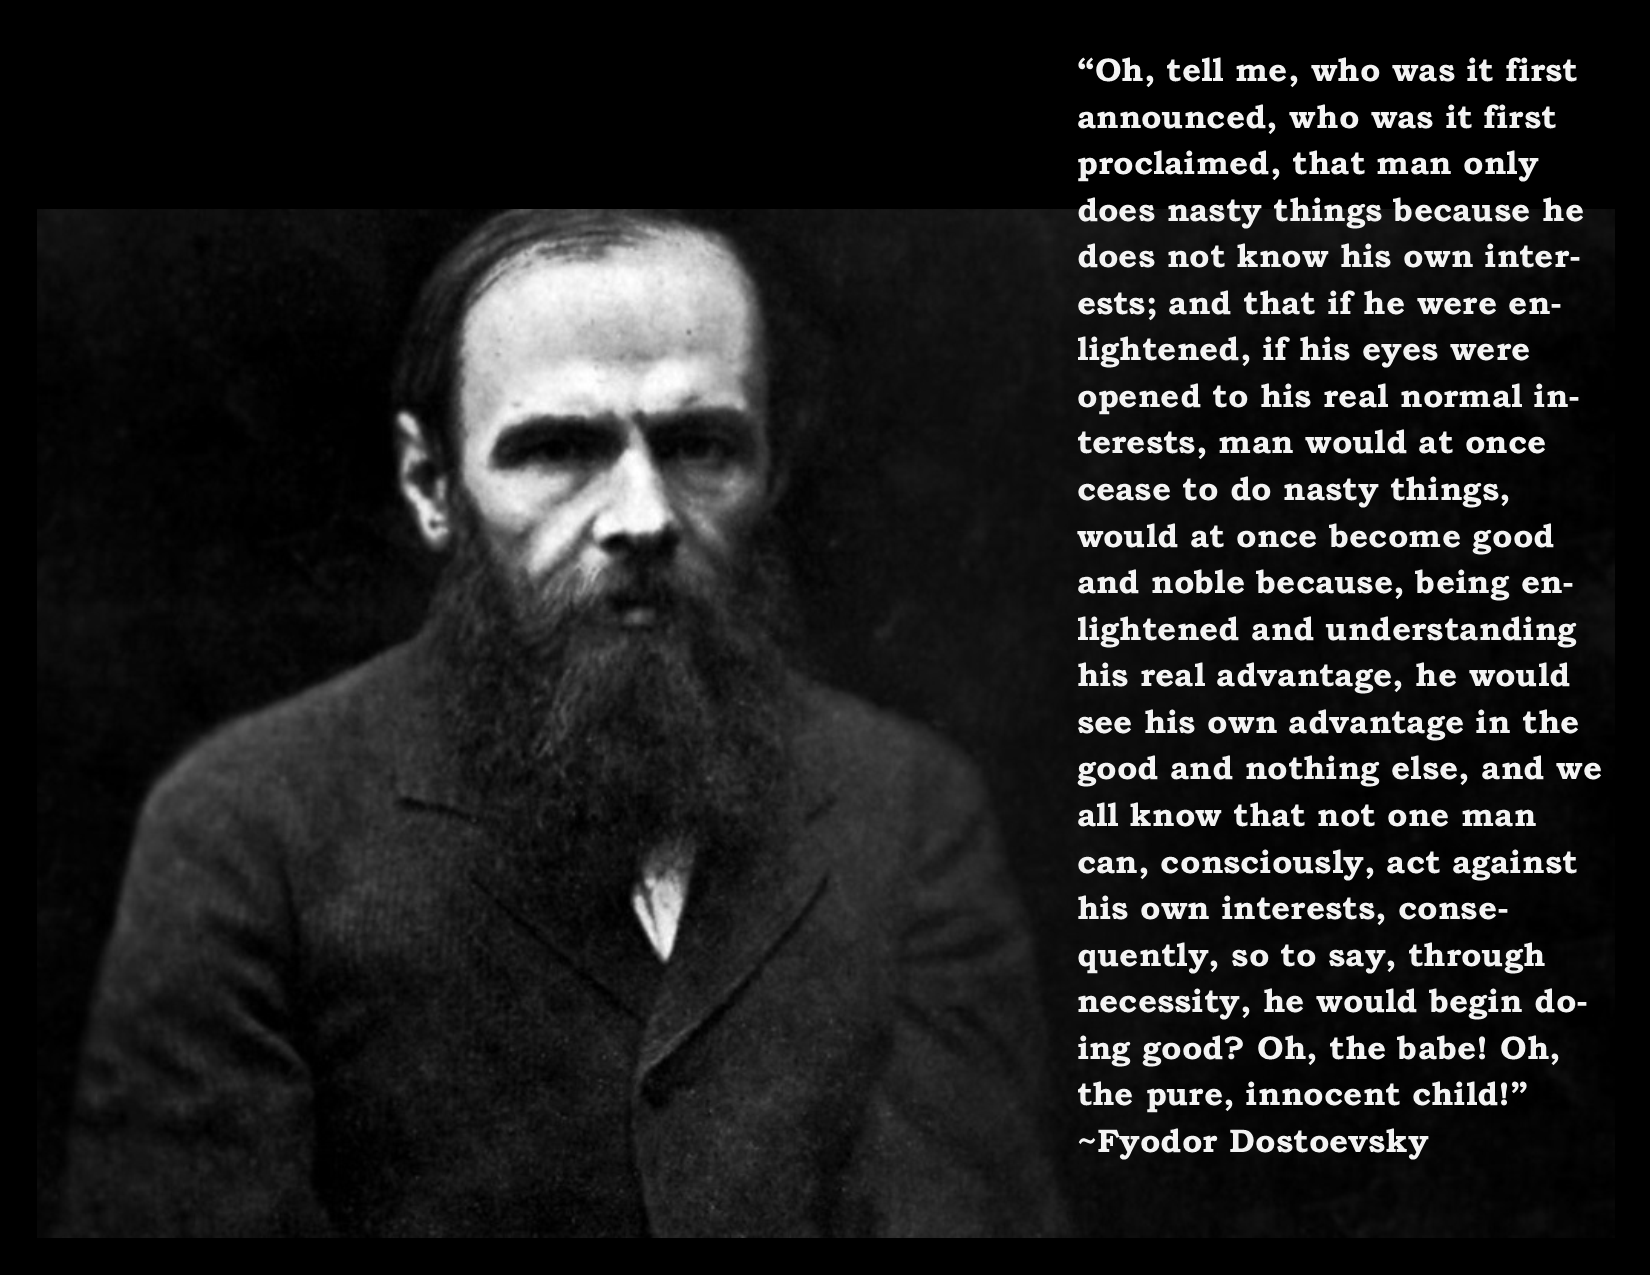 """Oh, tell me, who was it first announced, who was it first proclaimed, that man only does nasty things because he does not know his own interests…"" ~Fyodor Dostoevsky [OC [1650 x 1275]"